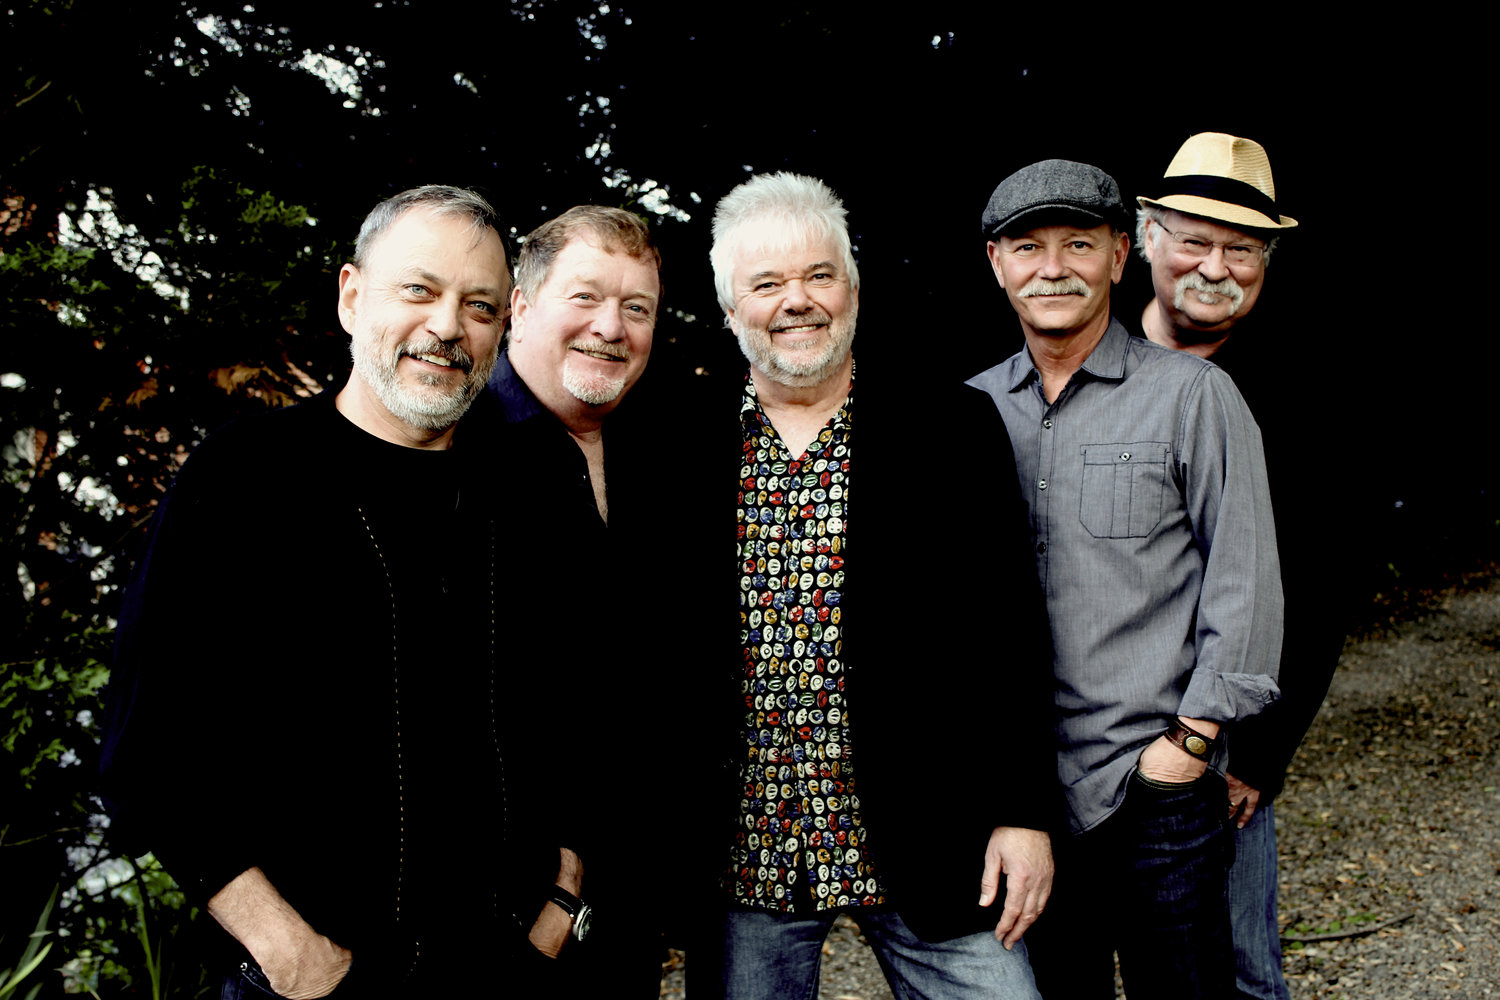 For four decades, The Seldom Scene has pioneered the progressive bluegrass movement by mixing bluegrass with versions of country, rock and pop music.